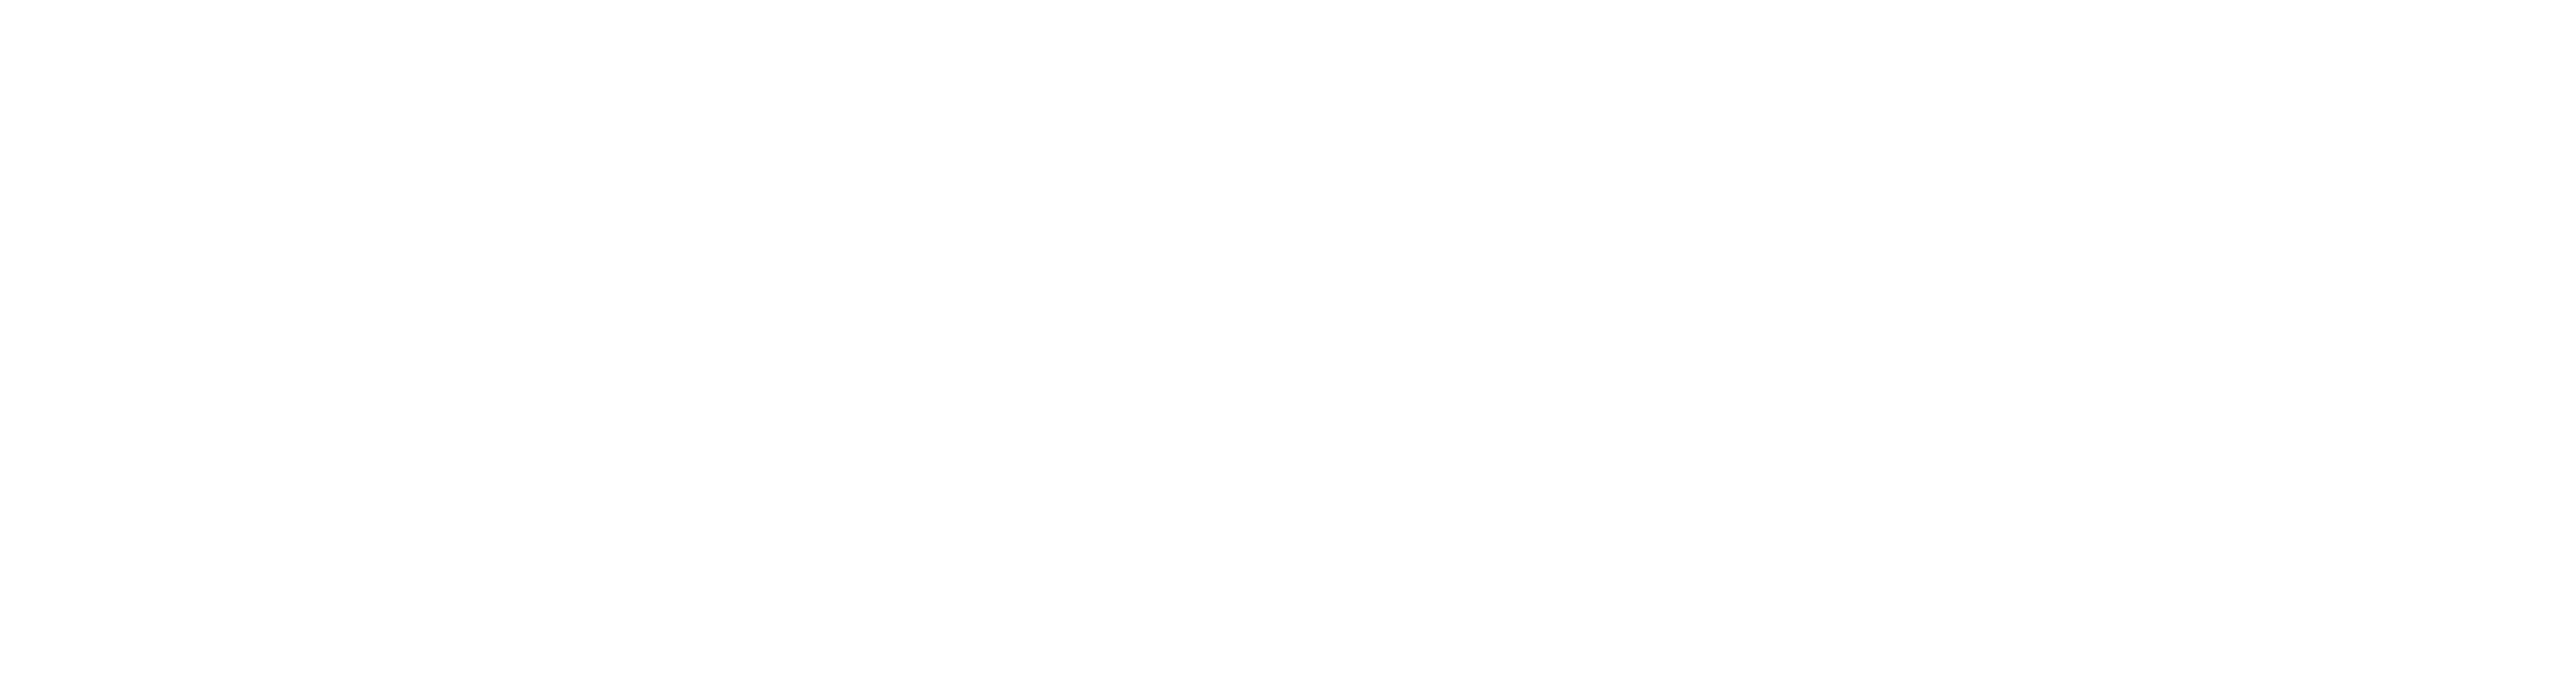 Blue Sky Analytics Logo in white